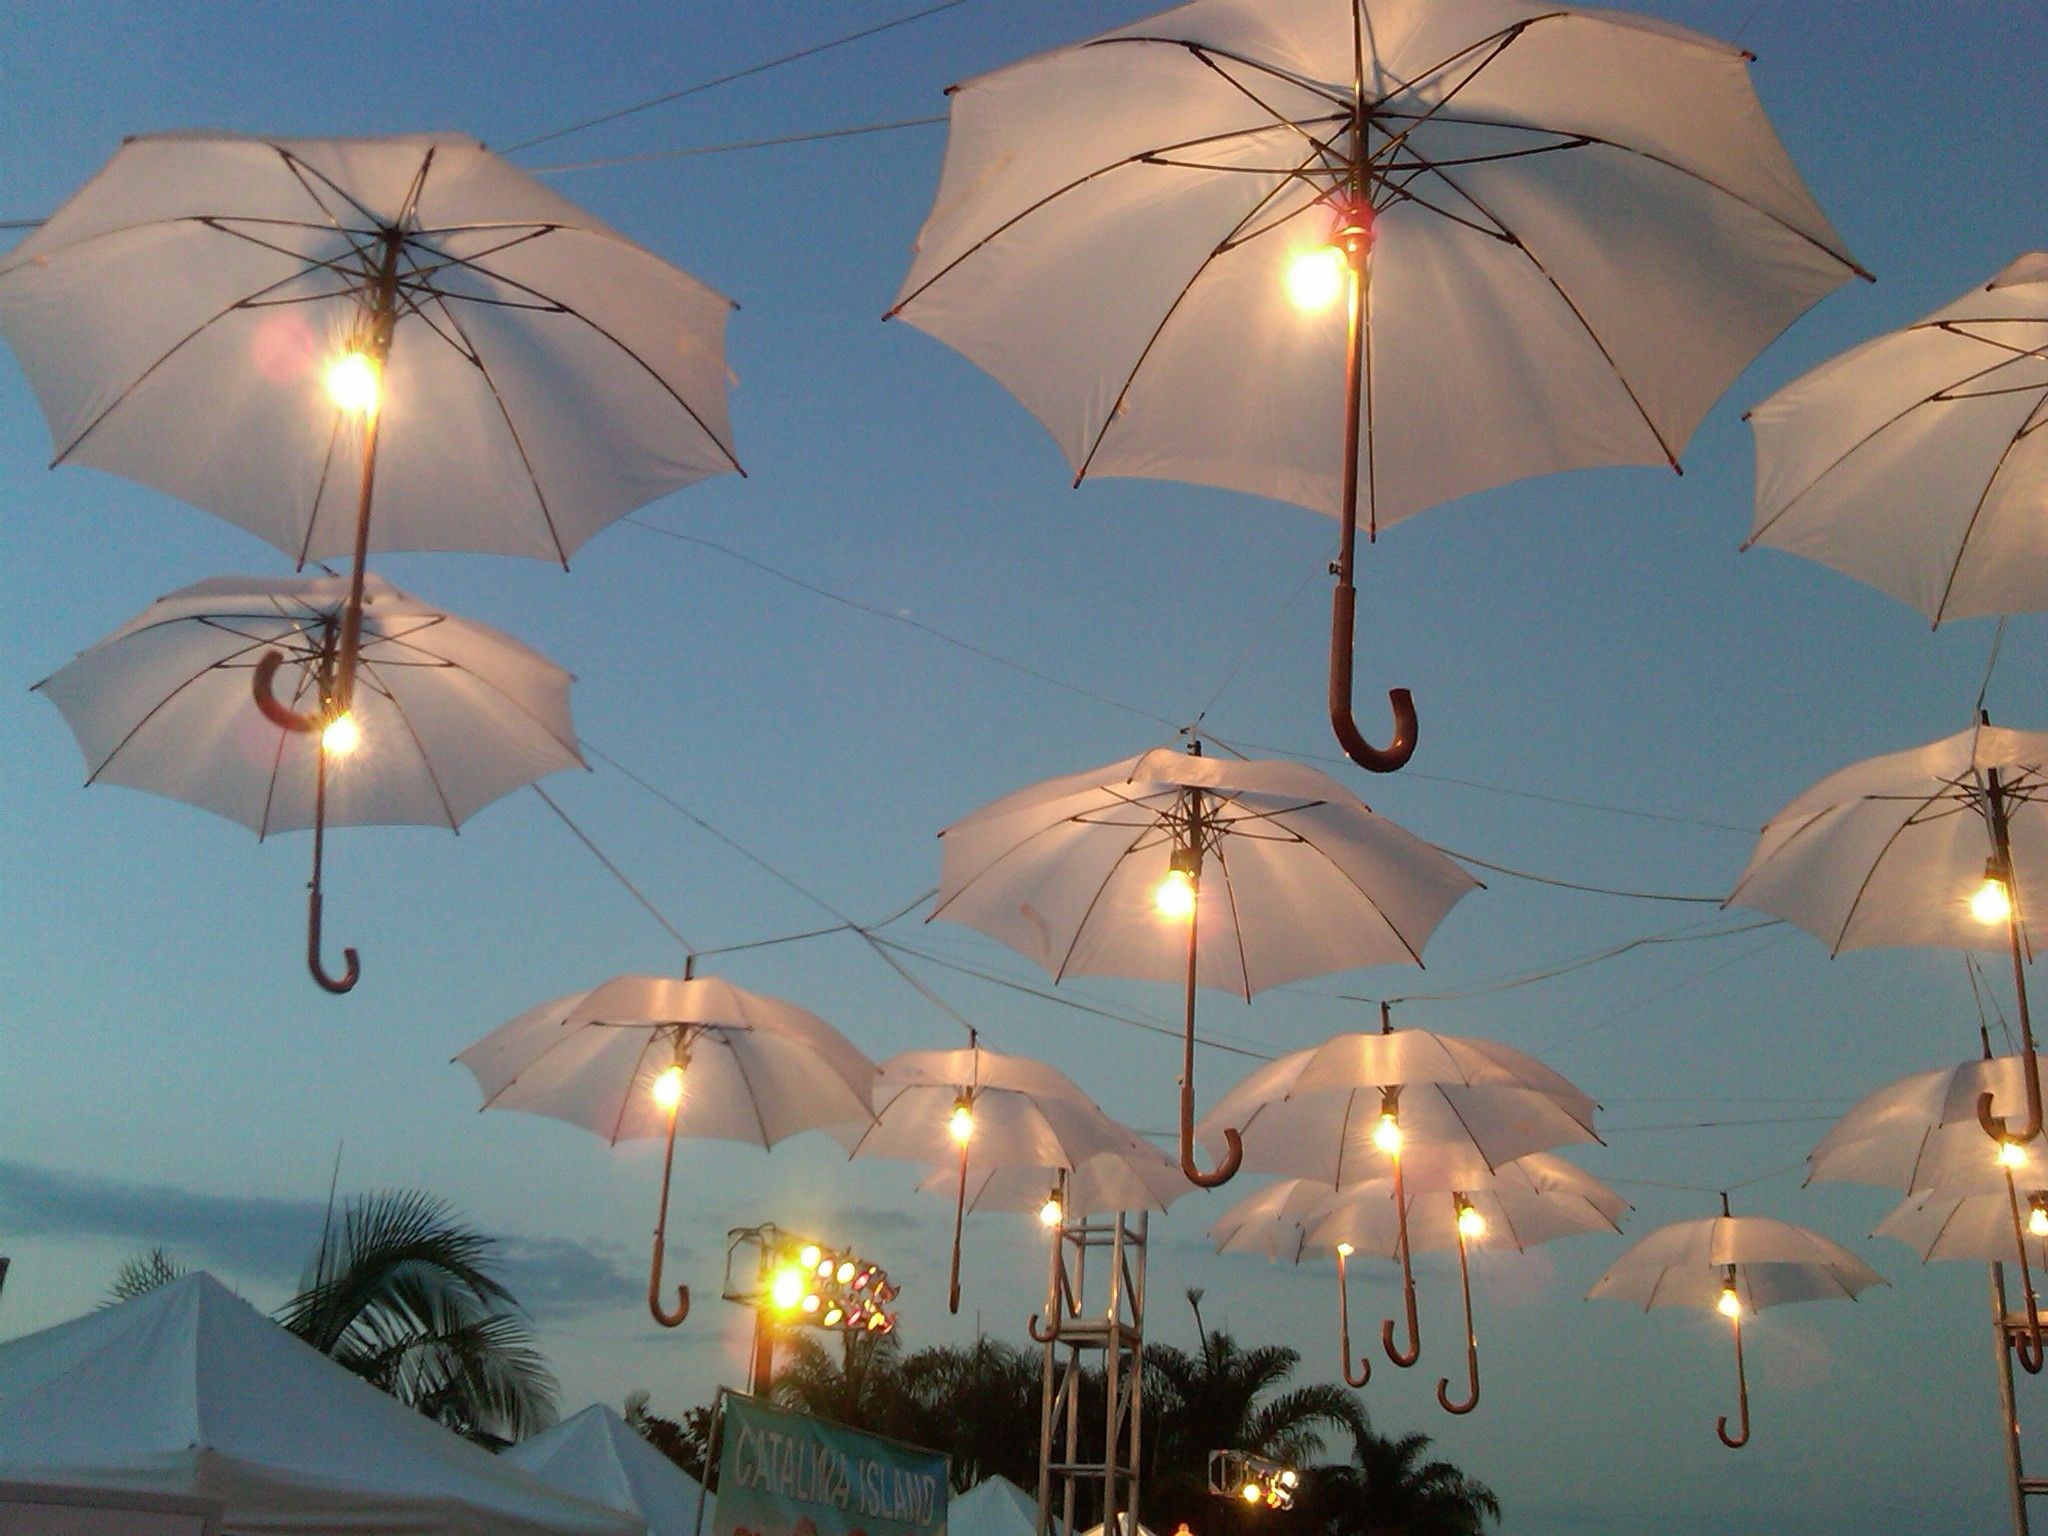 cafe backyard light lights lamp hanging string patio p outdoor lighting tungsten with connectable bistro market holiday garden bulbs party umbrella